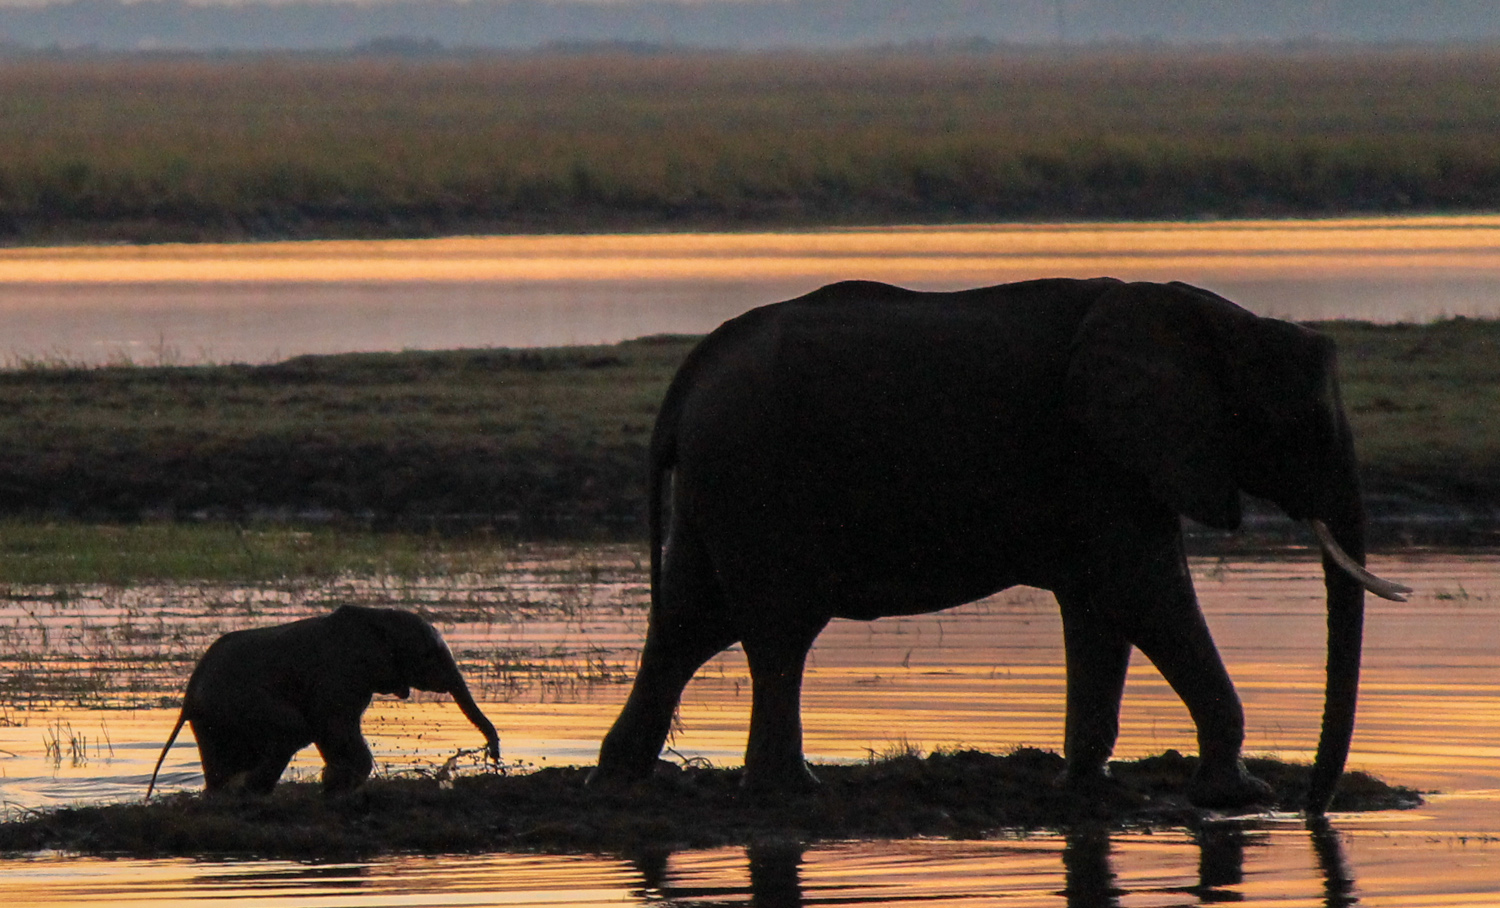 Elephants at sunrise in the Chobe River.